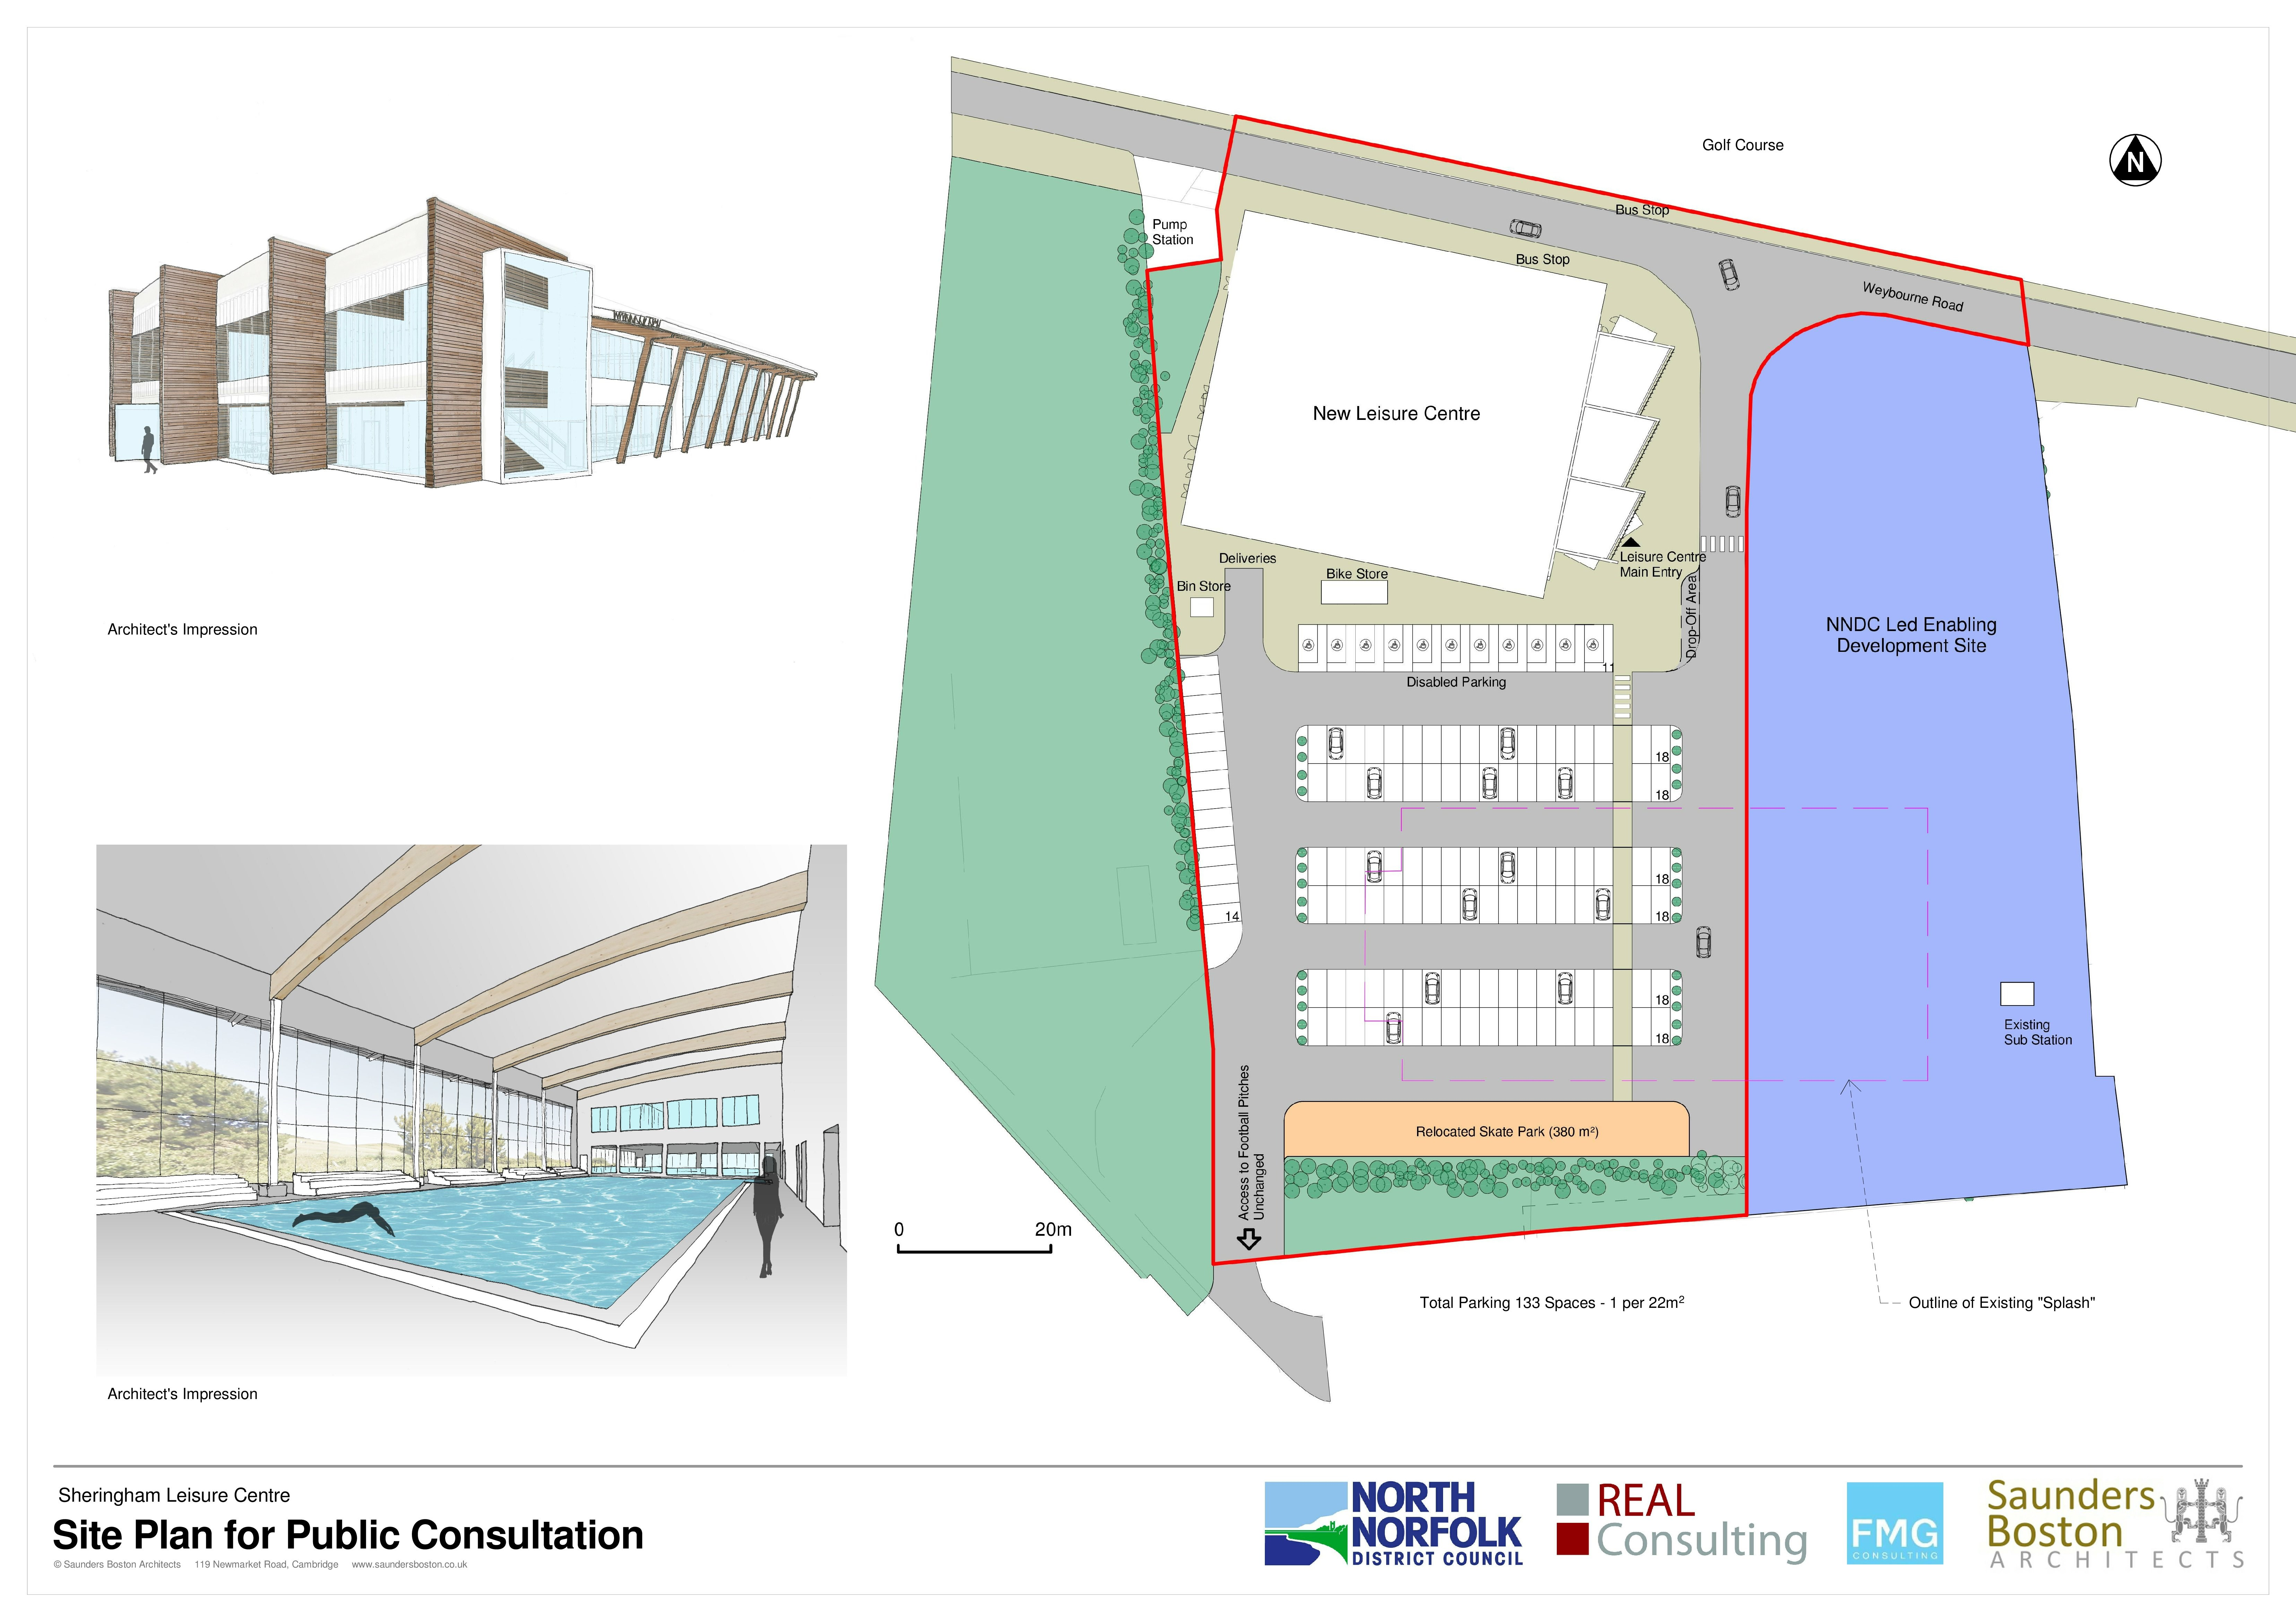 North Norfolk District Council seeks views on leisure centre proposals